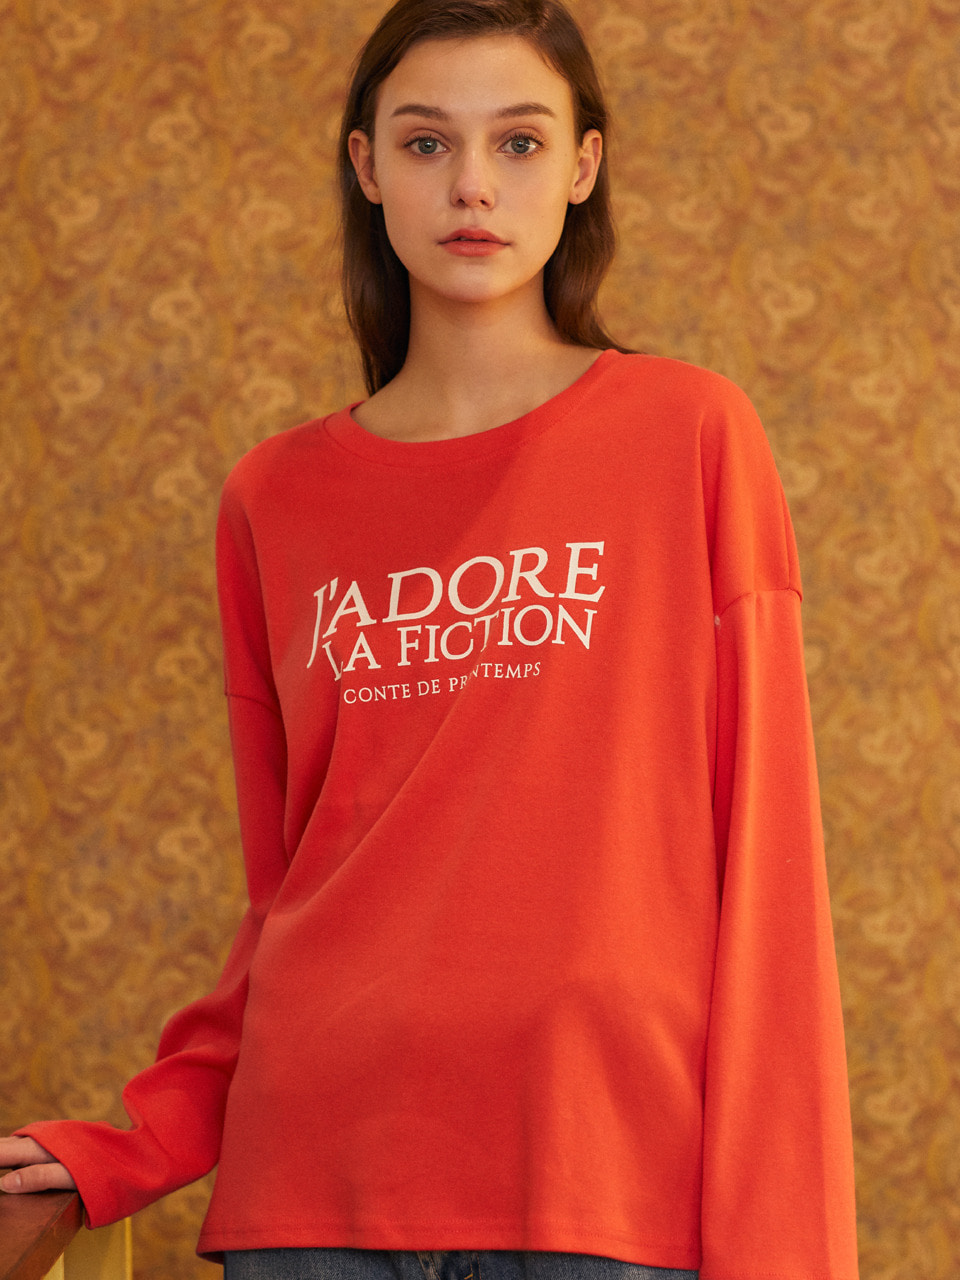 19SP FICTION T-SHIRT(CORAL)